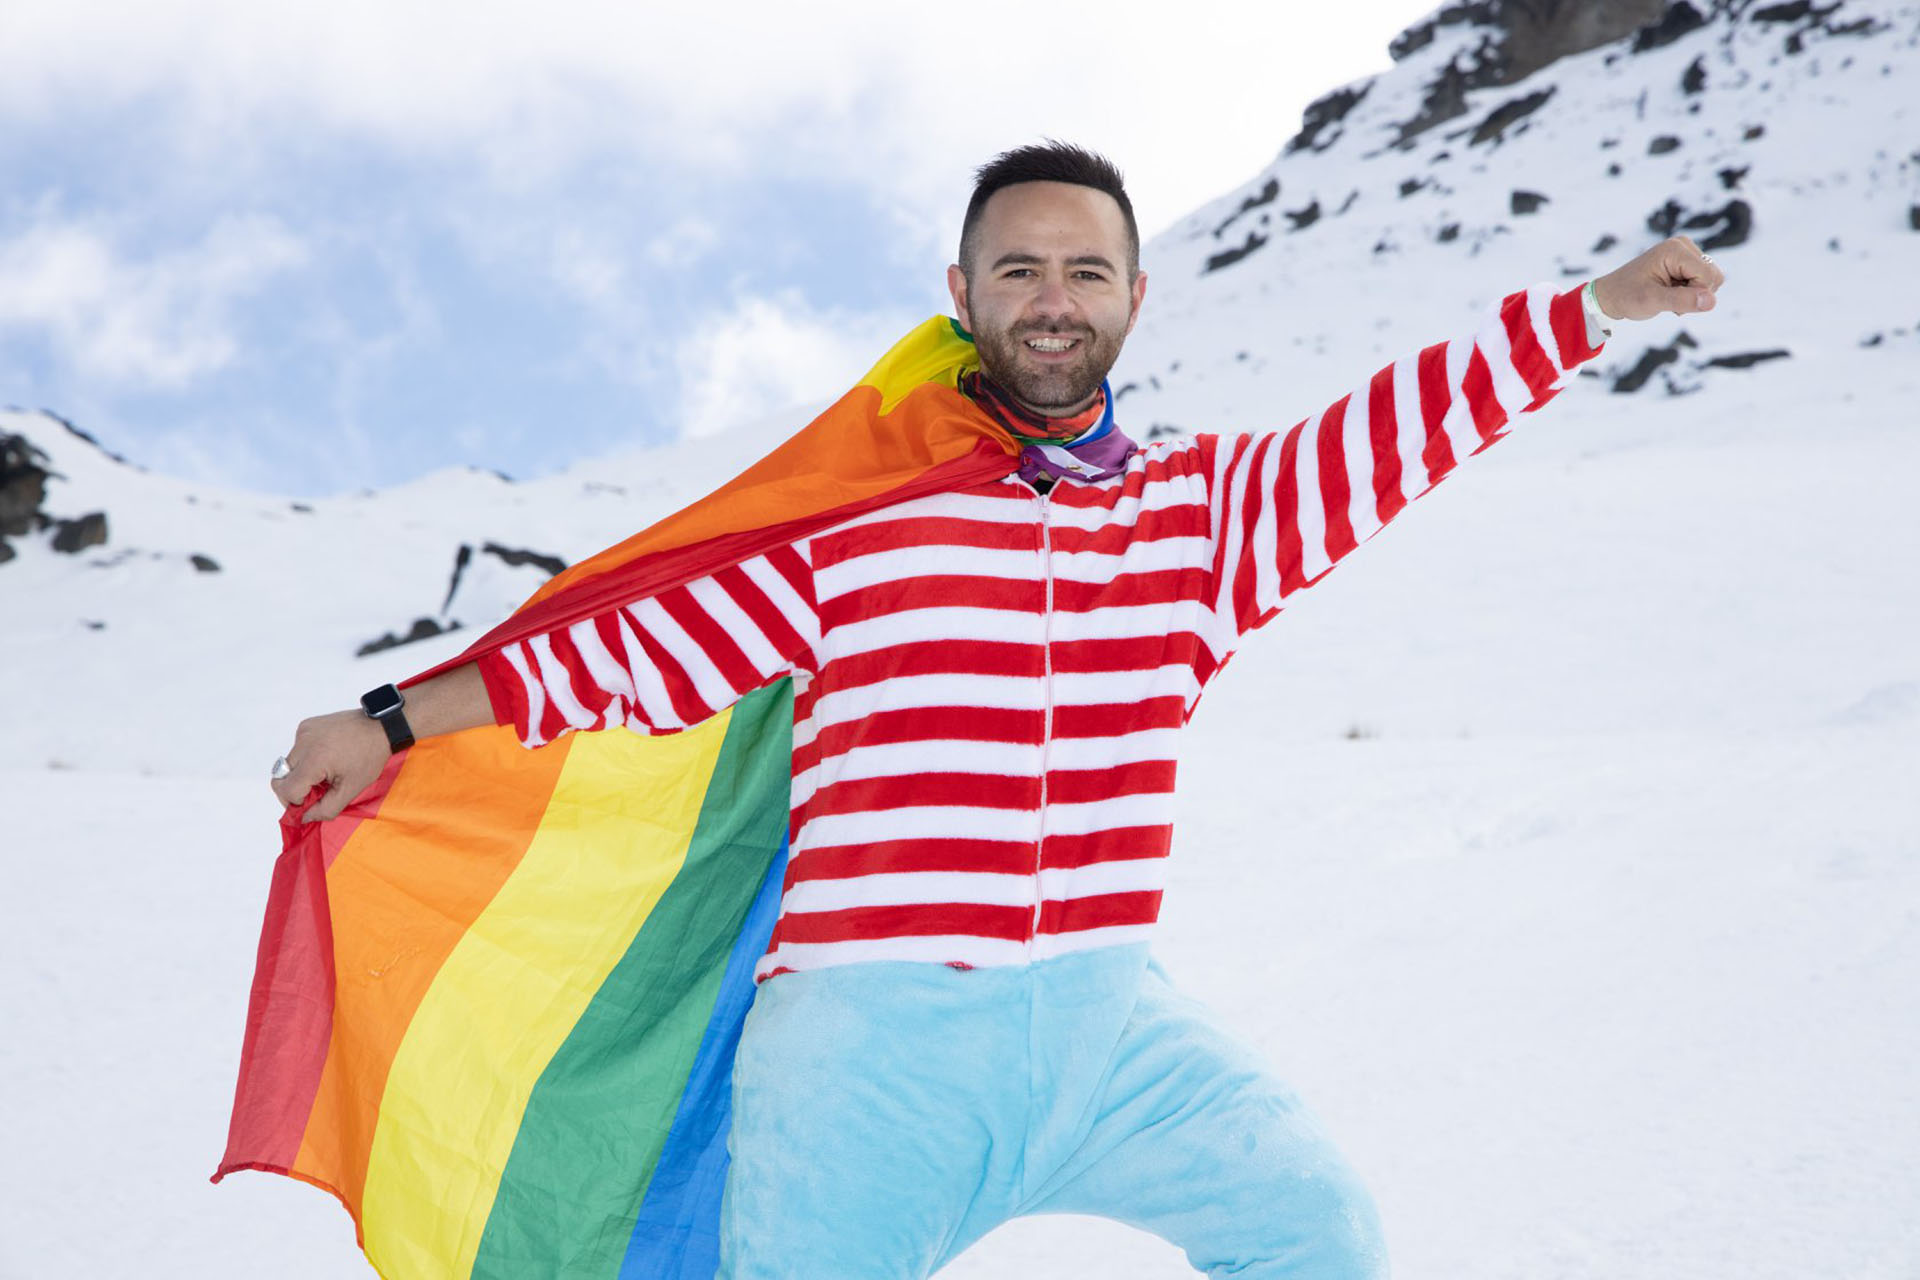 La semaine de ski gay à Queenstown, Nouvelle-Zélande